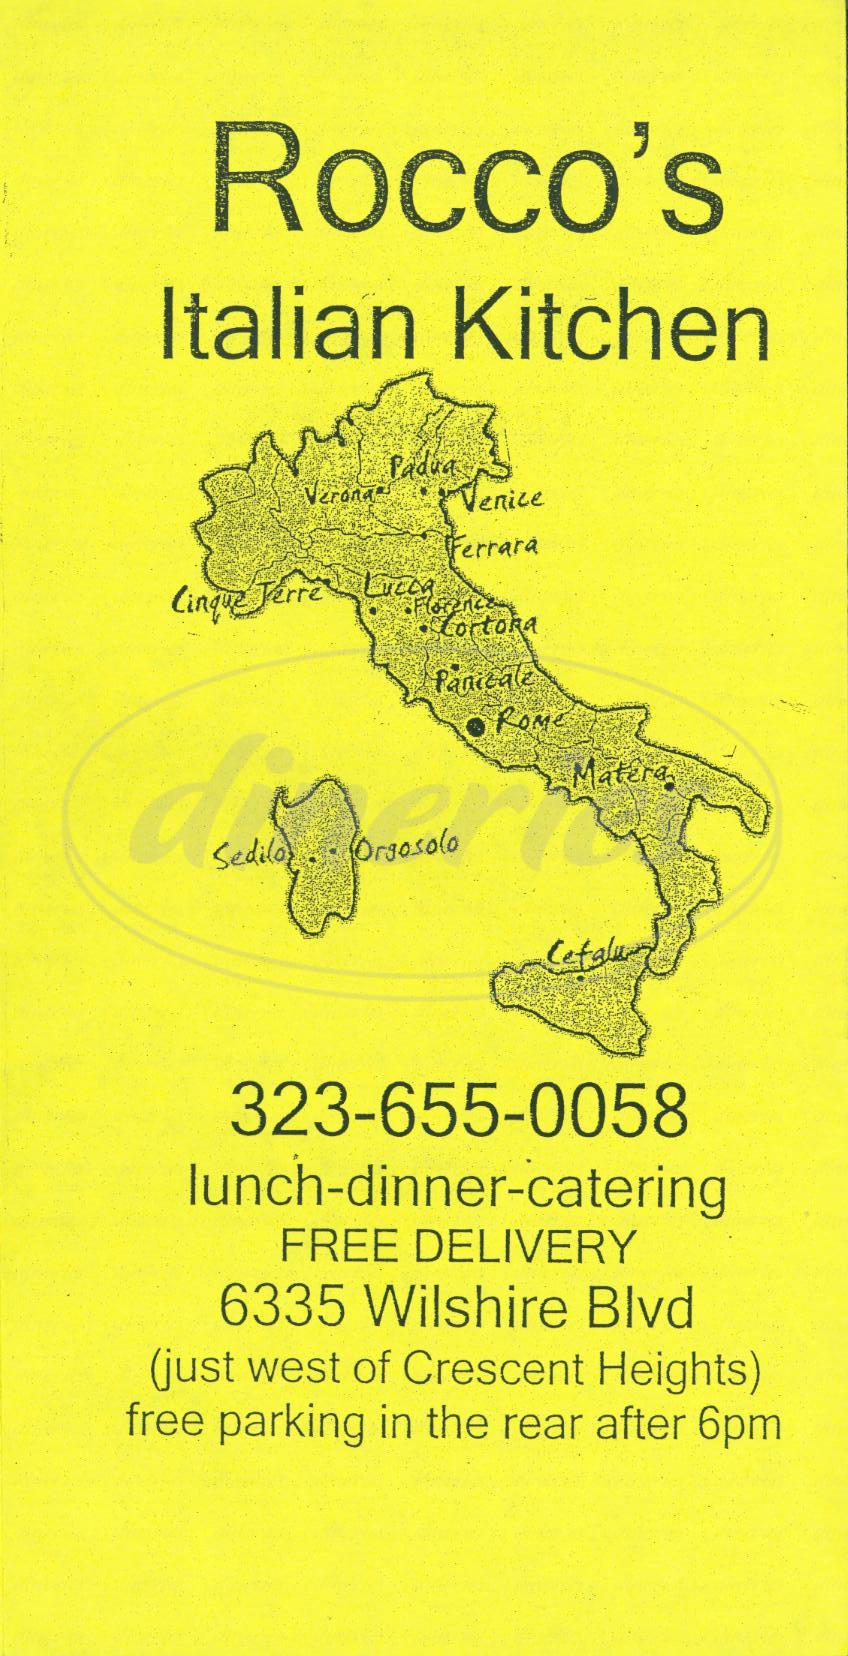 menu for Roccos Italian Kitchen